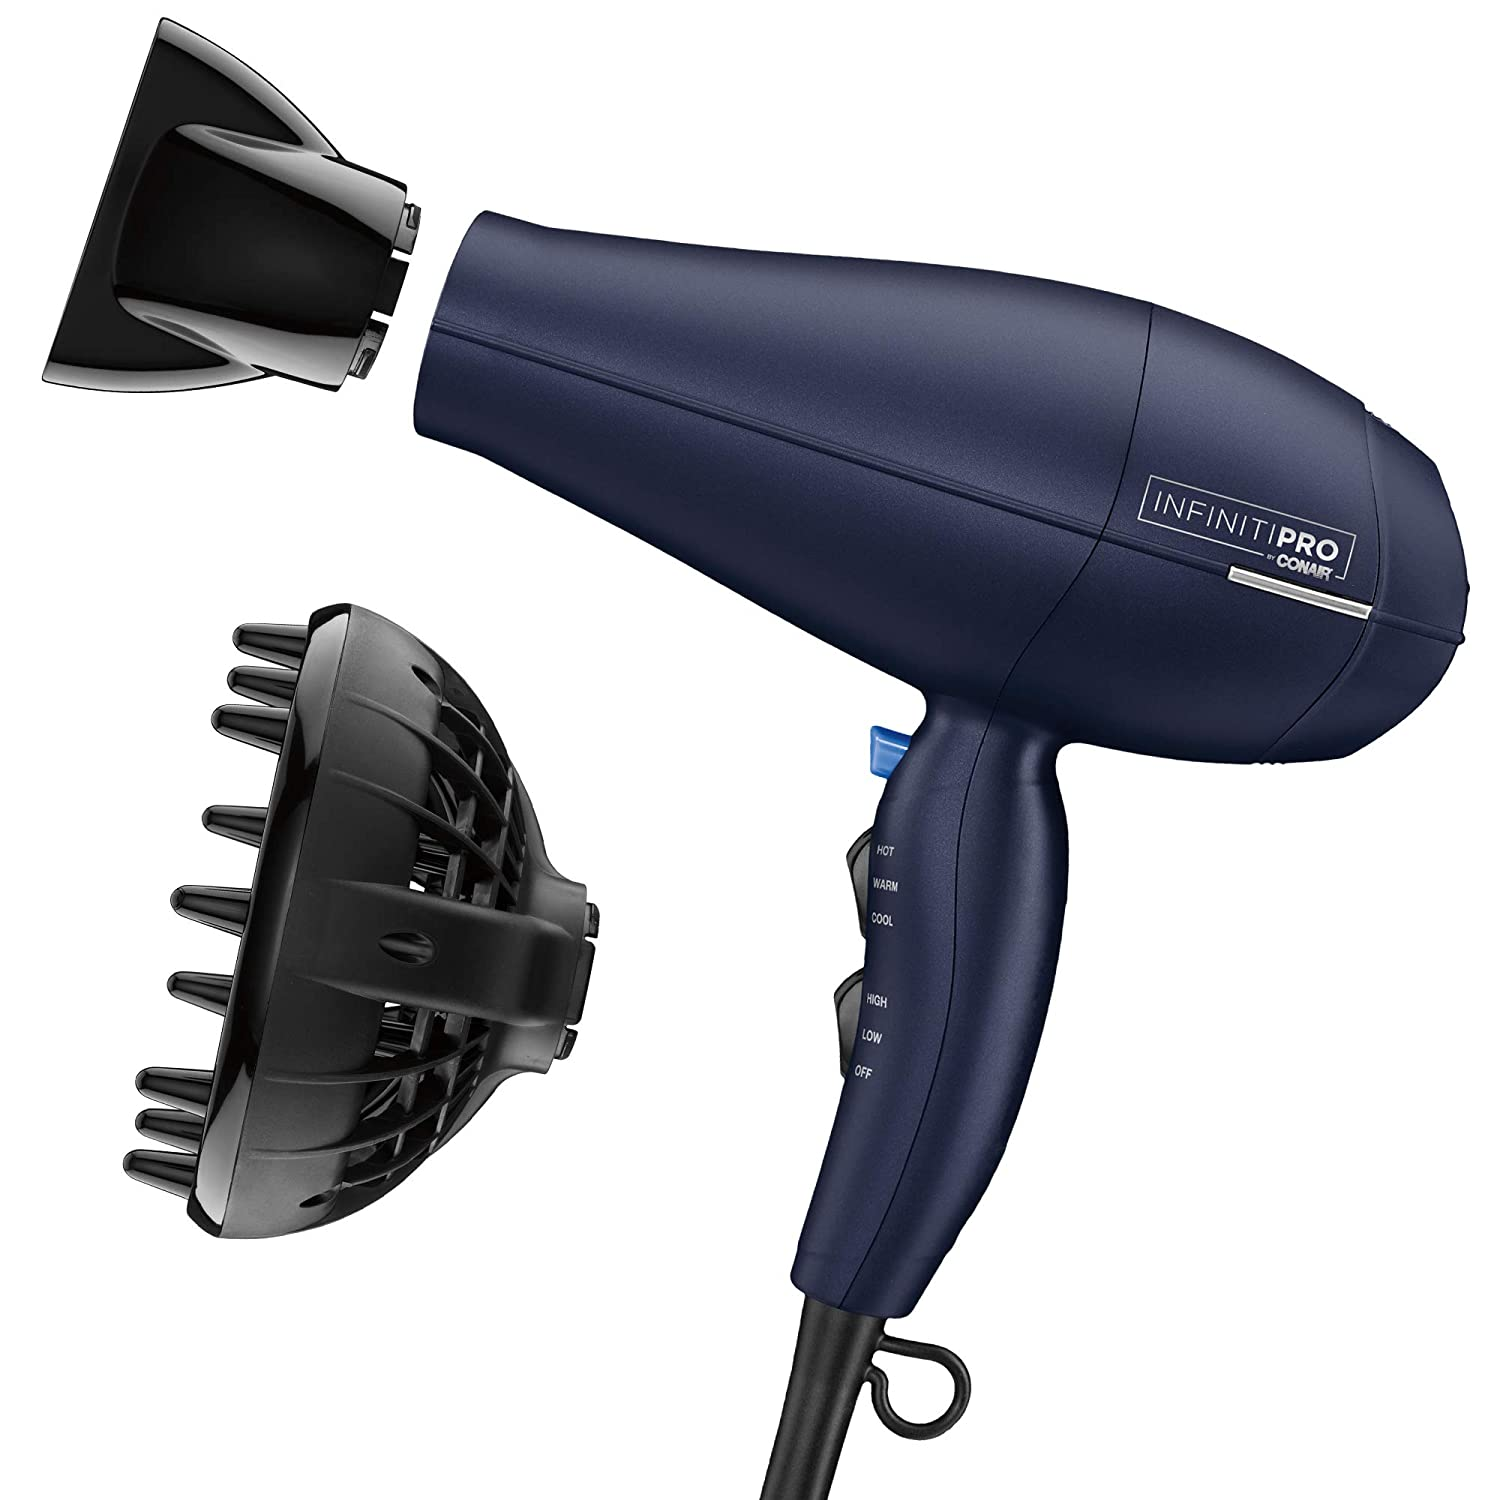 INFINITIPRO BY CONAIR 1875 Watt Texture Styling Hair Dryer for Natural Curls and Waves, Dark Blue, 1 Count: Beauty